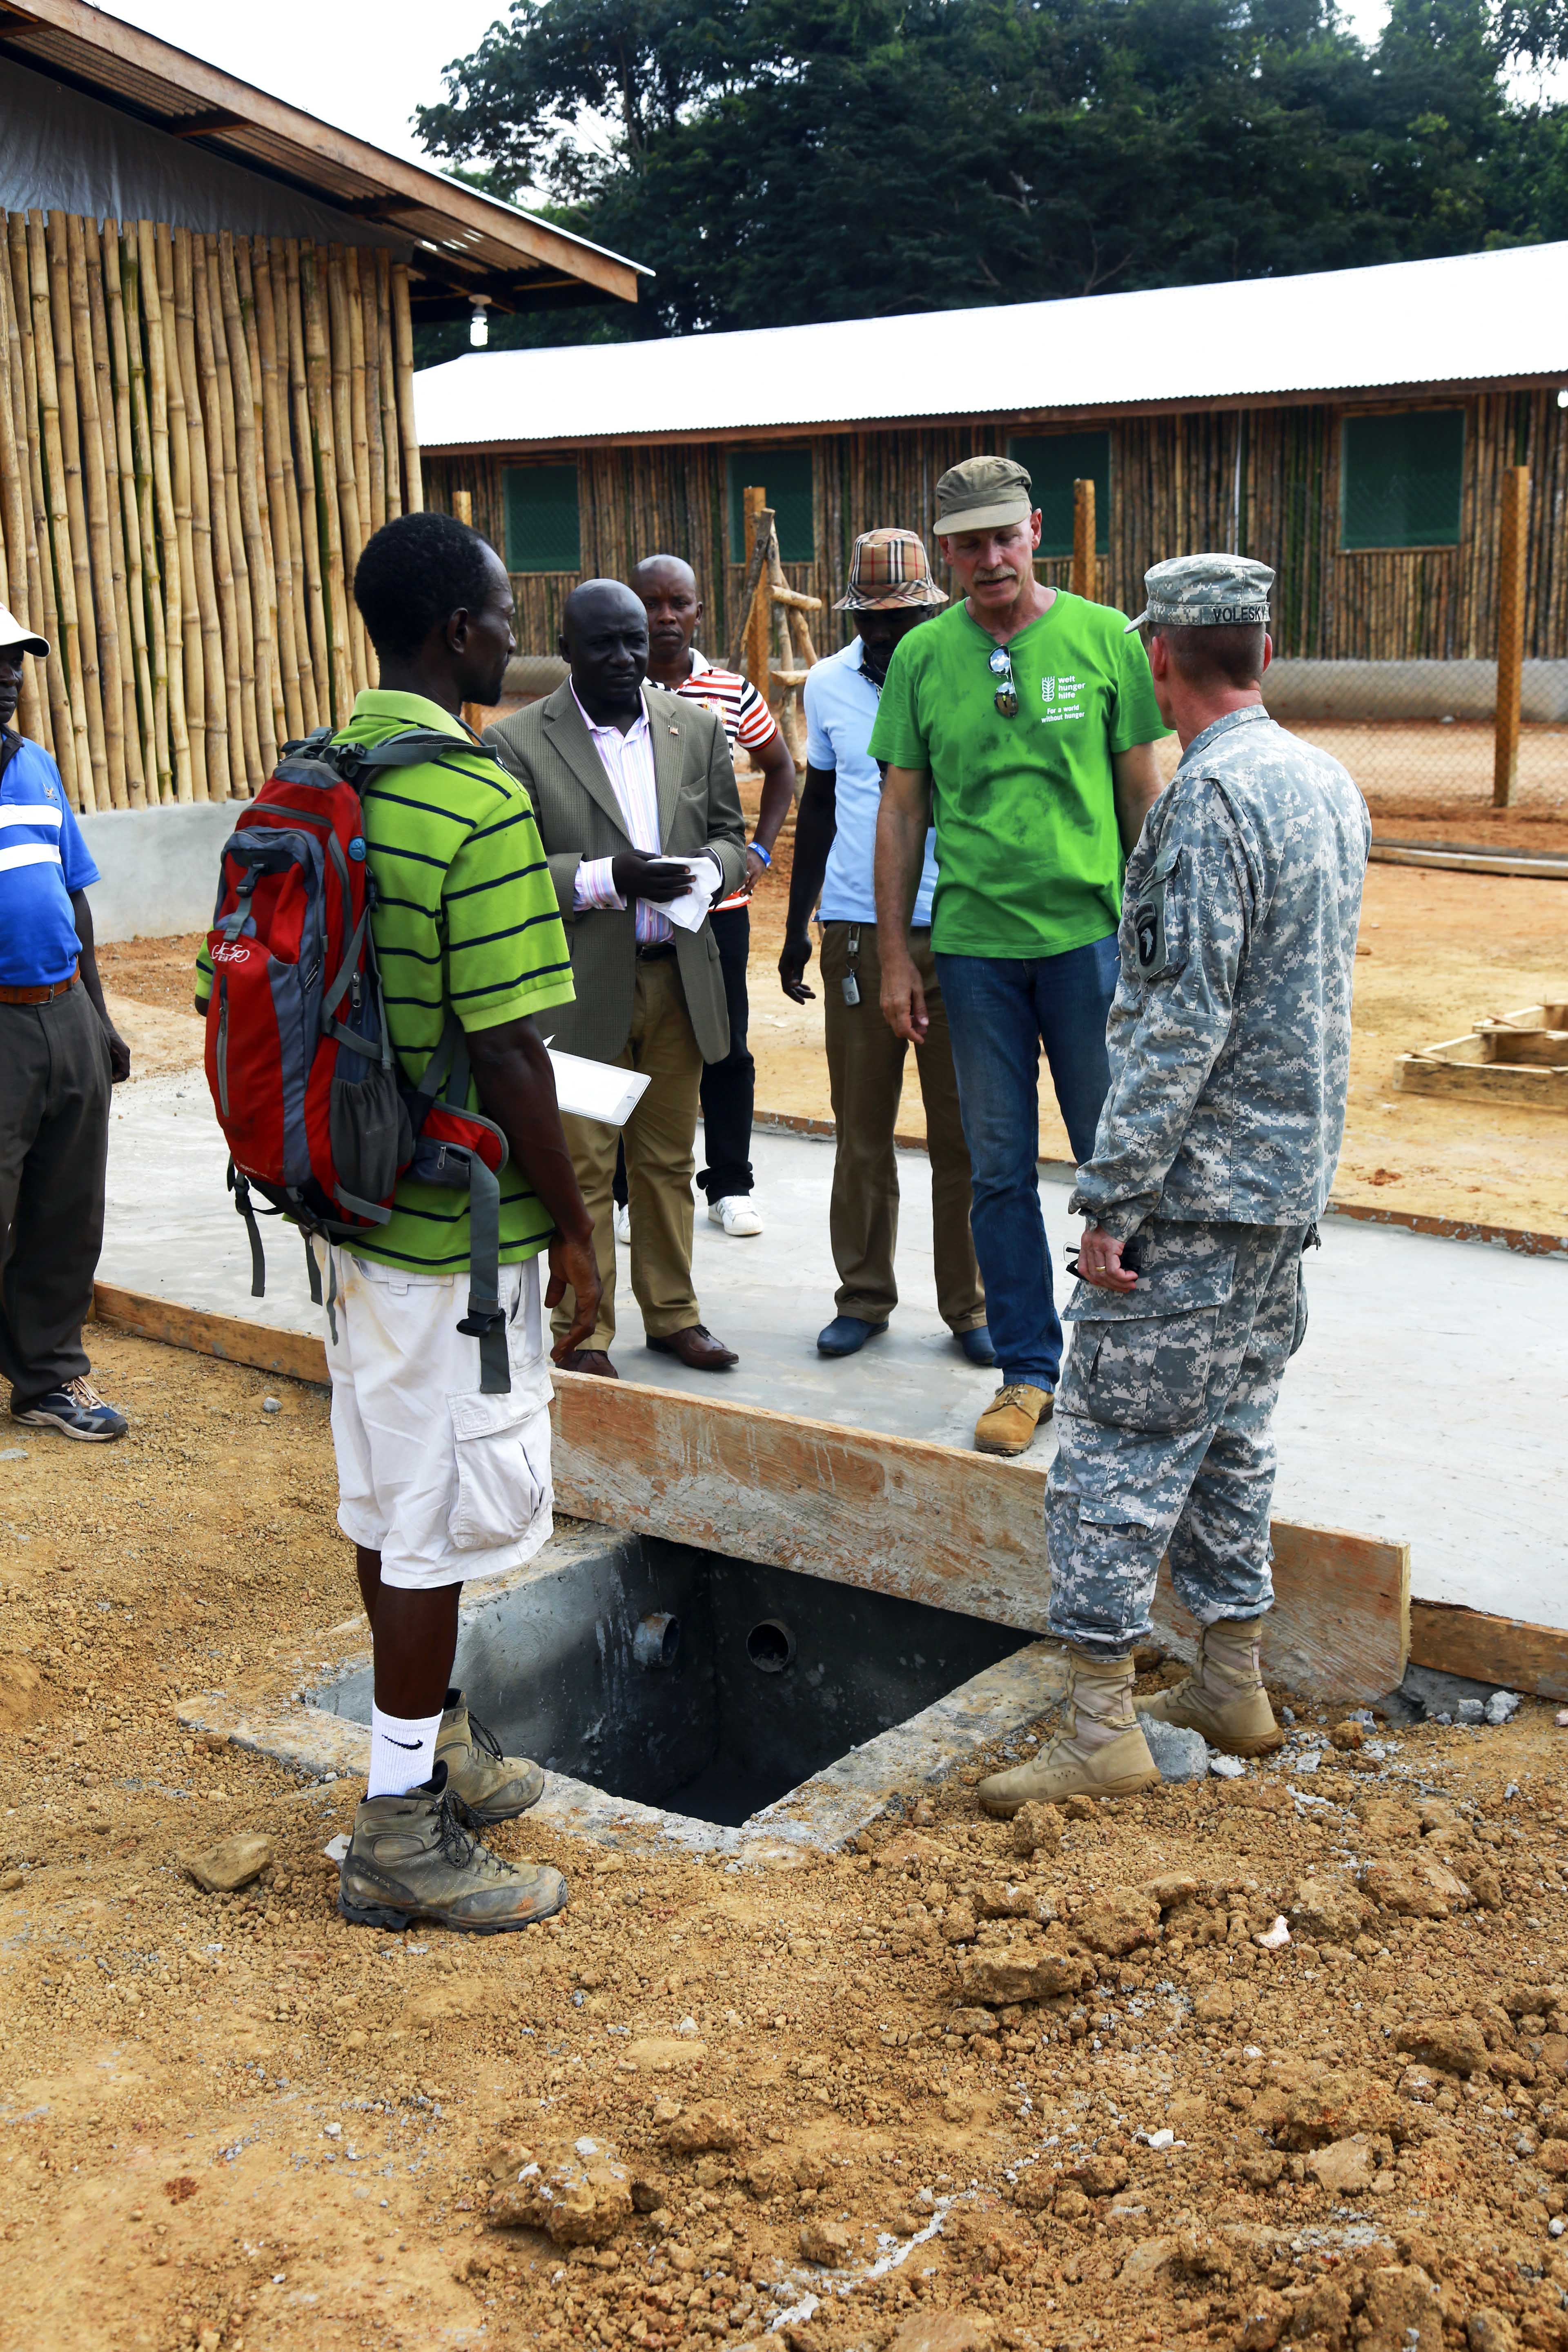 A U.S. Army officer meets with local officials and representatives of international aid organizations to discuss a new Ebola treatment unit in Zwedru, Liberia, on December 10, 2014. (U.S. Army photo by Sgt. 1st Class Brien Vorhees)